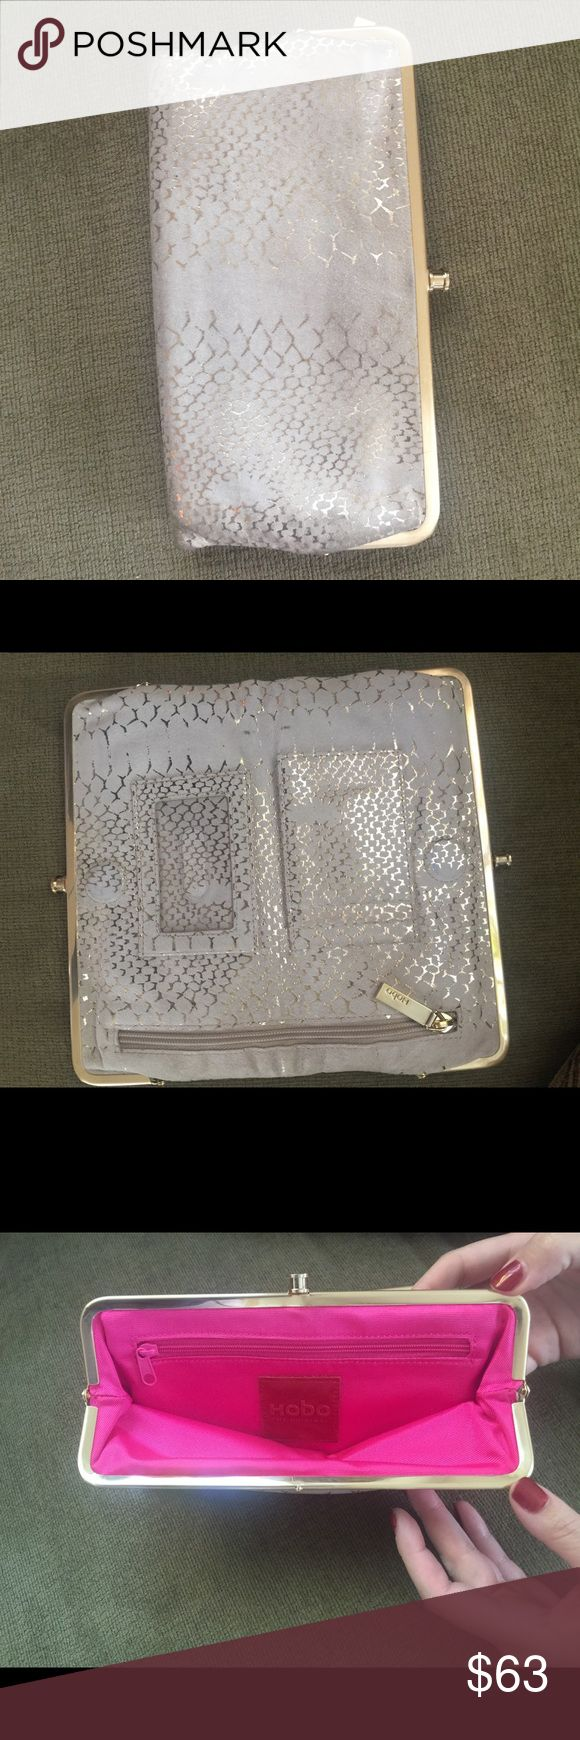 HOBO WALLET-Cream and Gold Cream and gold HOBO wallet, mild wear, excellent condition. HOBO Bags Hobos